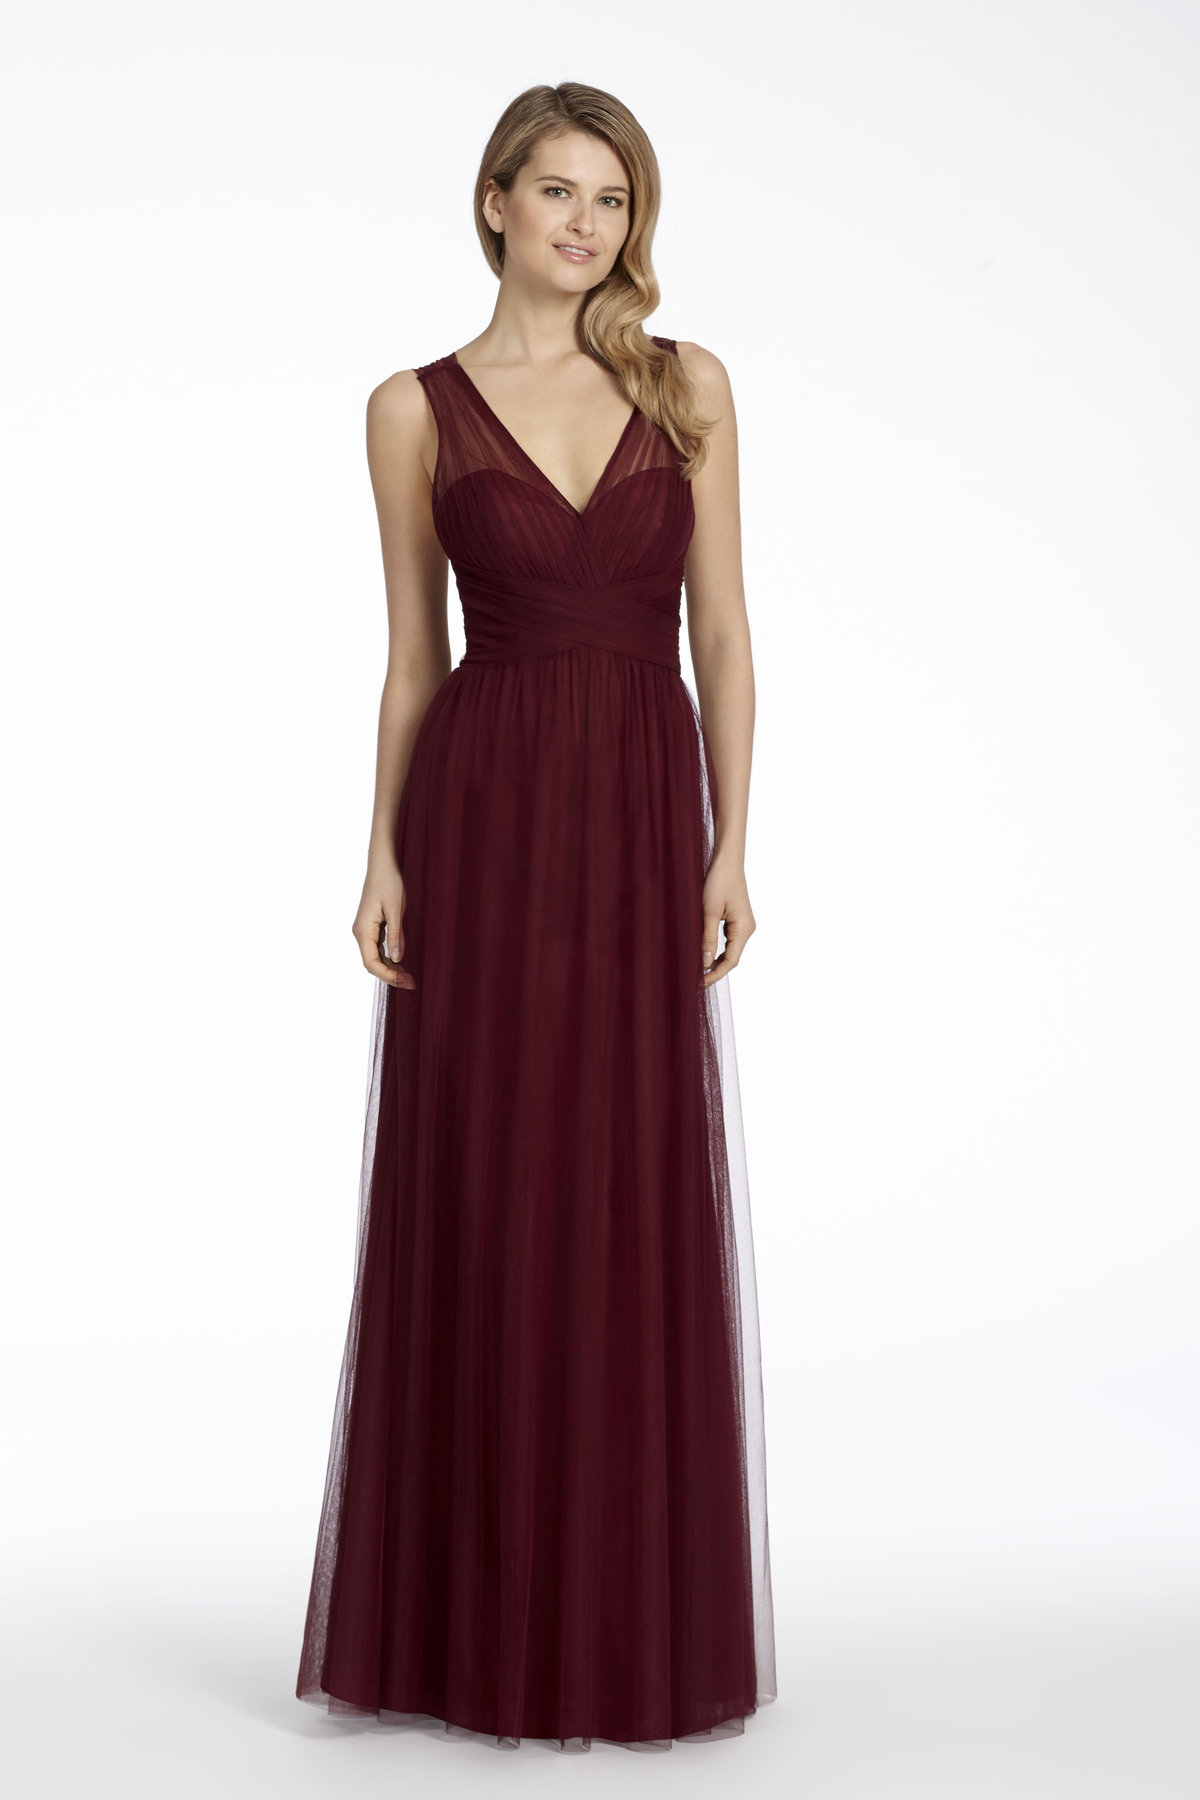 Maternity Dresses For Special Occasions